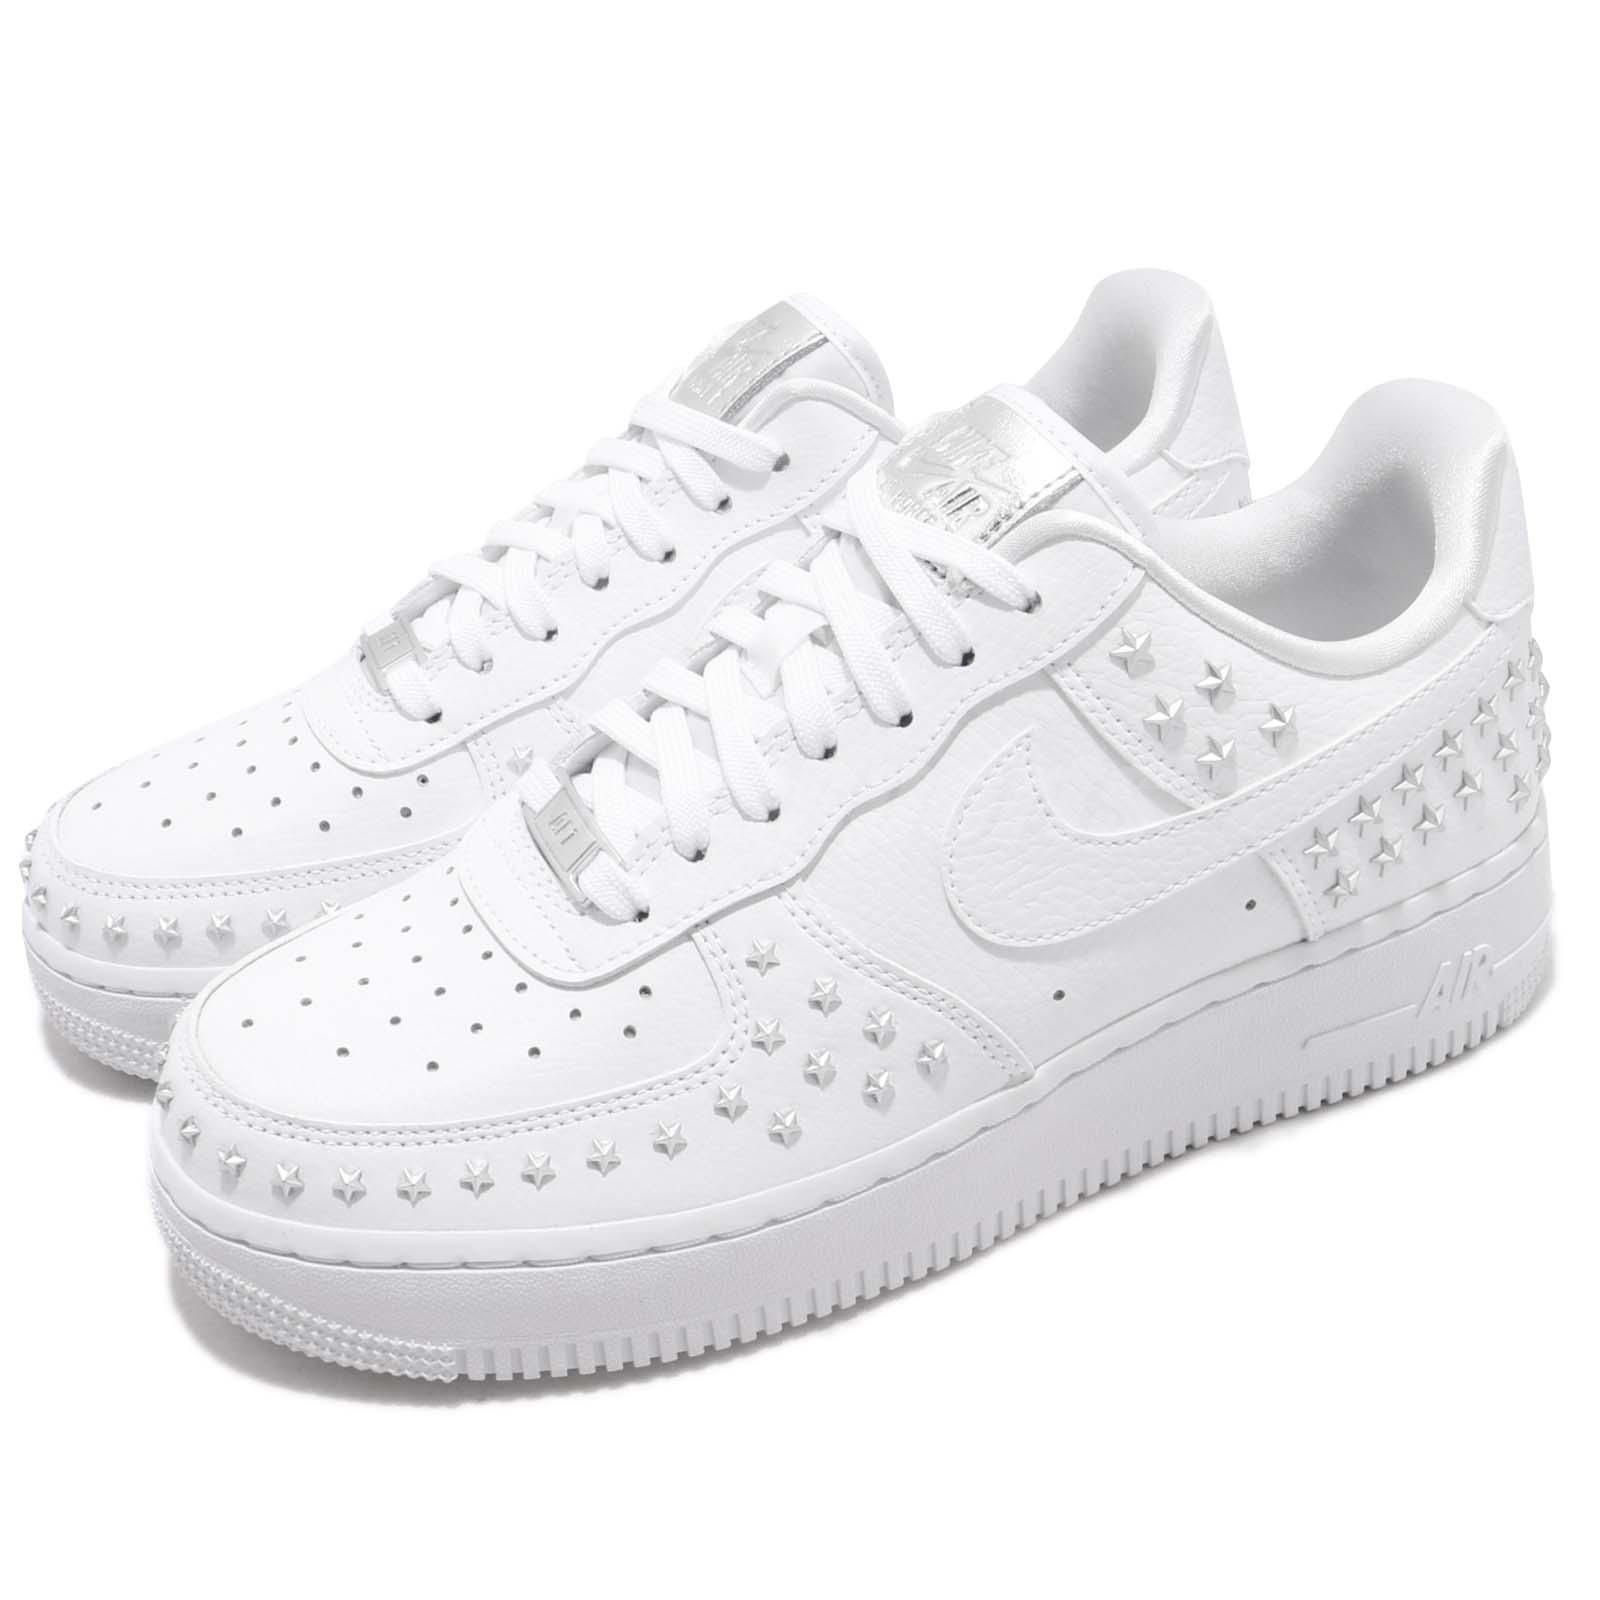 cheap for discount c1064 825d4 Details about Nike Wmns Air Force 1 07 XX White Silver Star-Studded Women AF1  Shoes AR0639-100